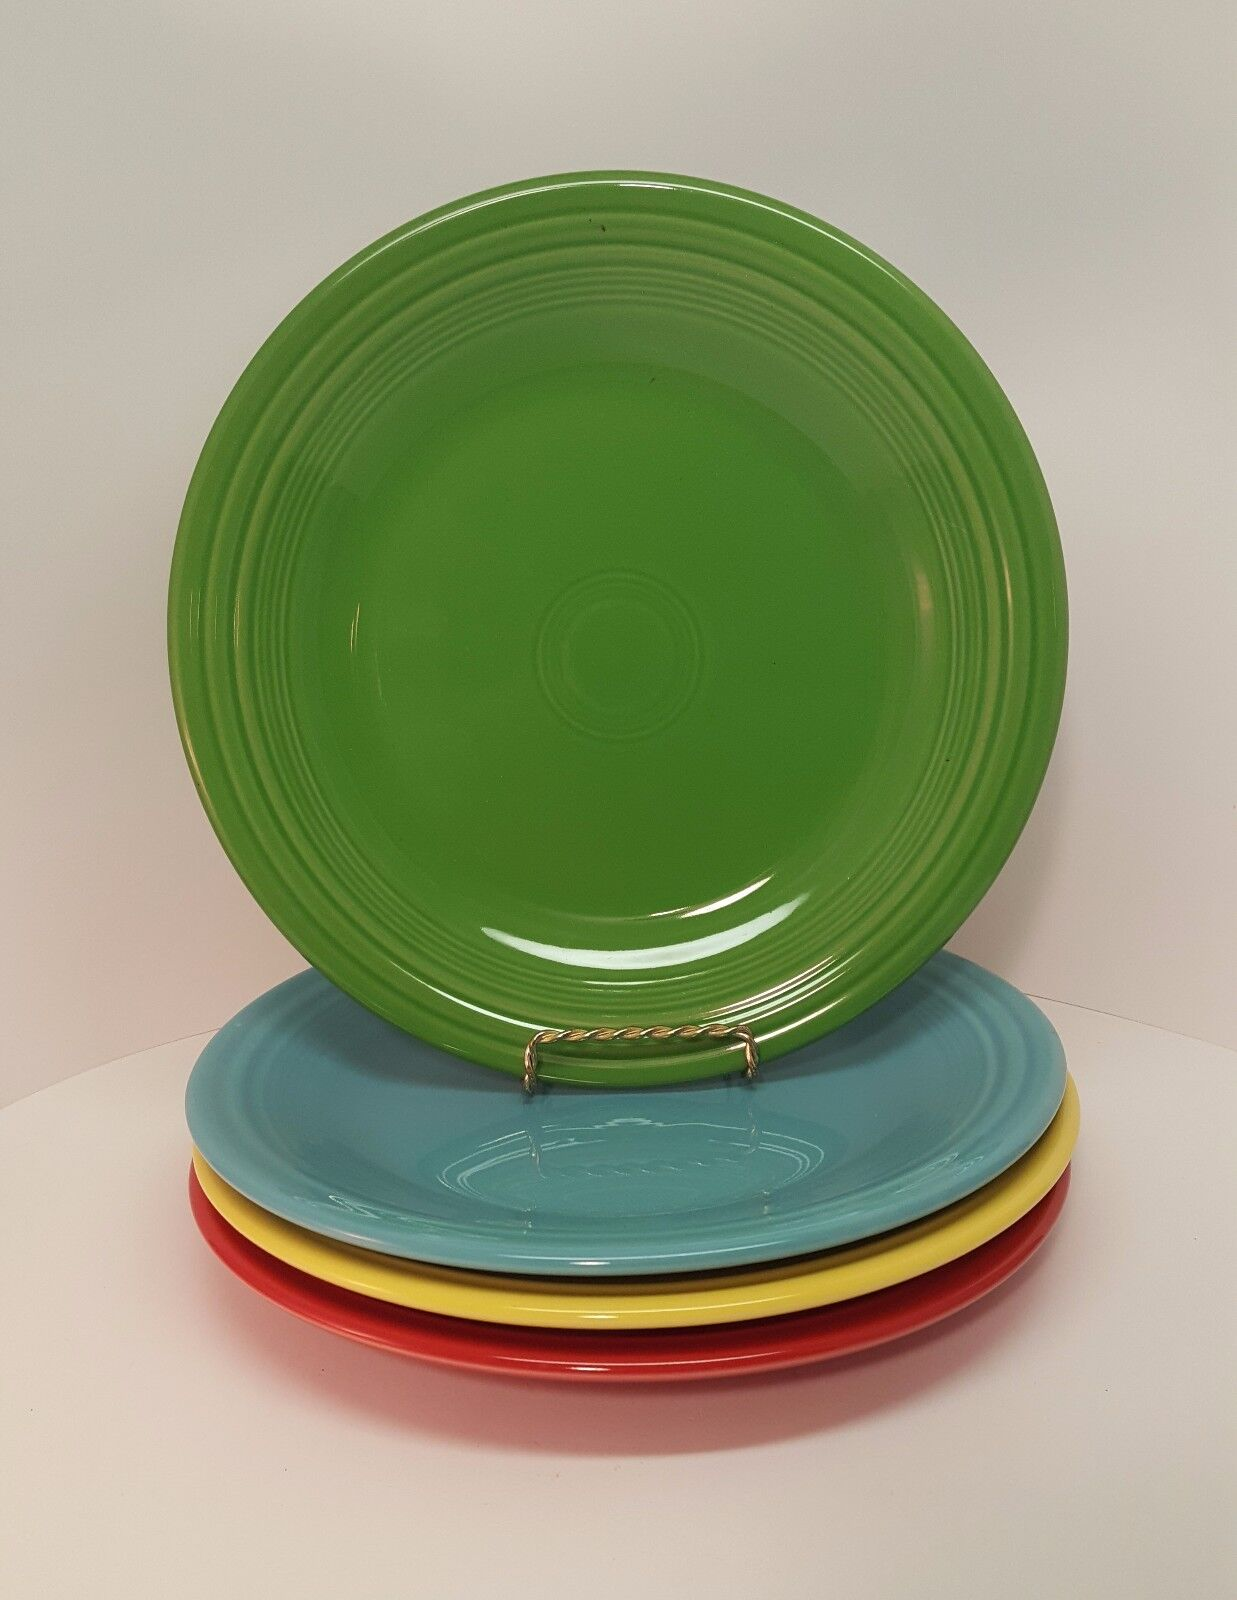 Fiestaware mixed colors Dinner Plate Lot of 4 Fiesta 10.5 inch plates 4C1M7